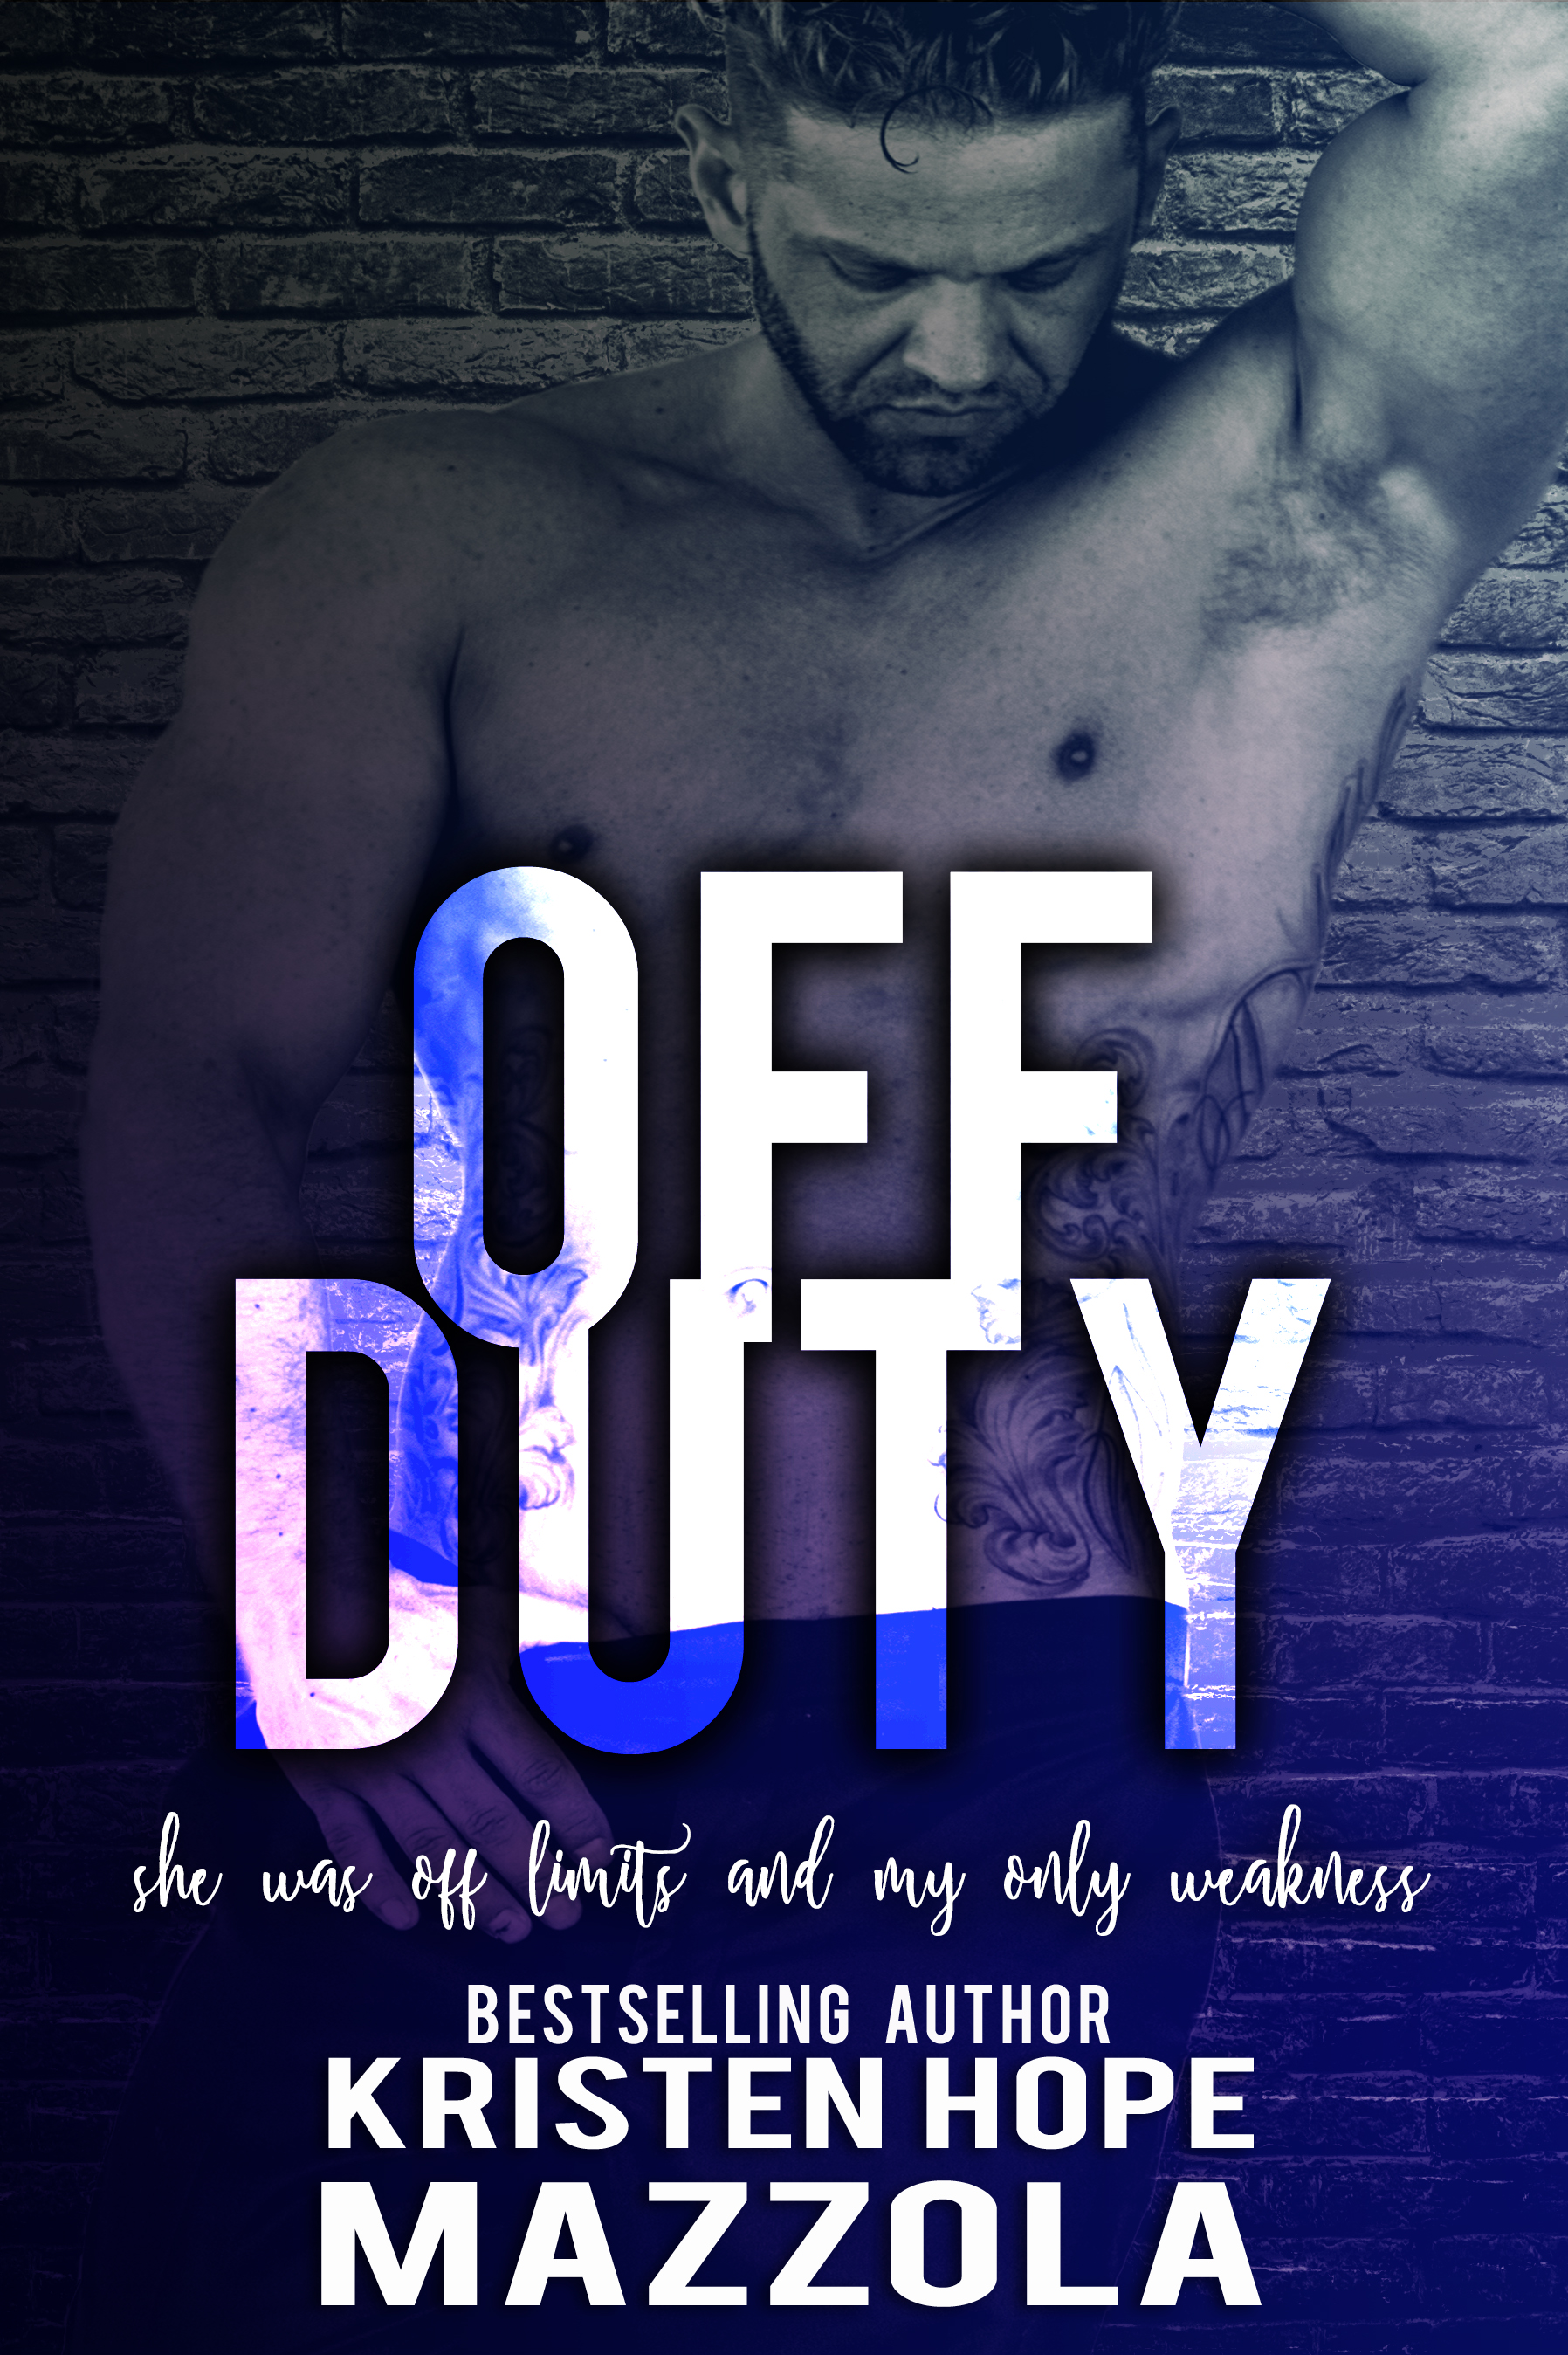 1off duty - front